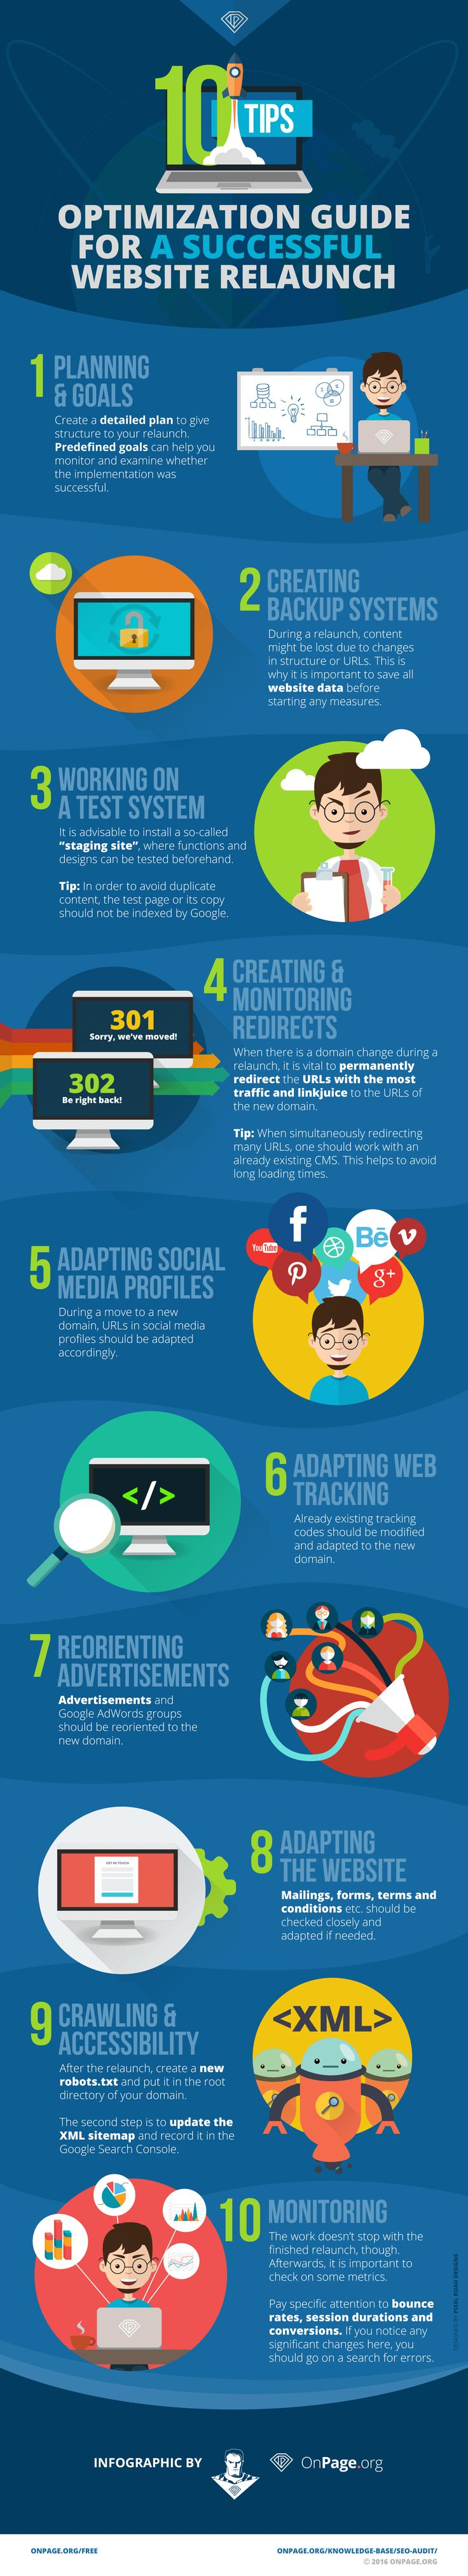 From exact planning, to tracking, to detailed monitoring – our latest infographic helps you step by step on your way to the perfect website relaunch. If the domain changes, it is especially important that those URLs showing the most traffic or those with a lot of link power are permanently redirected to the URLs of the new domain. Finally, a relaunch does not only involve changes on the website but also adapting the social media profiles and tracking codes.